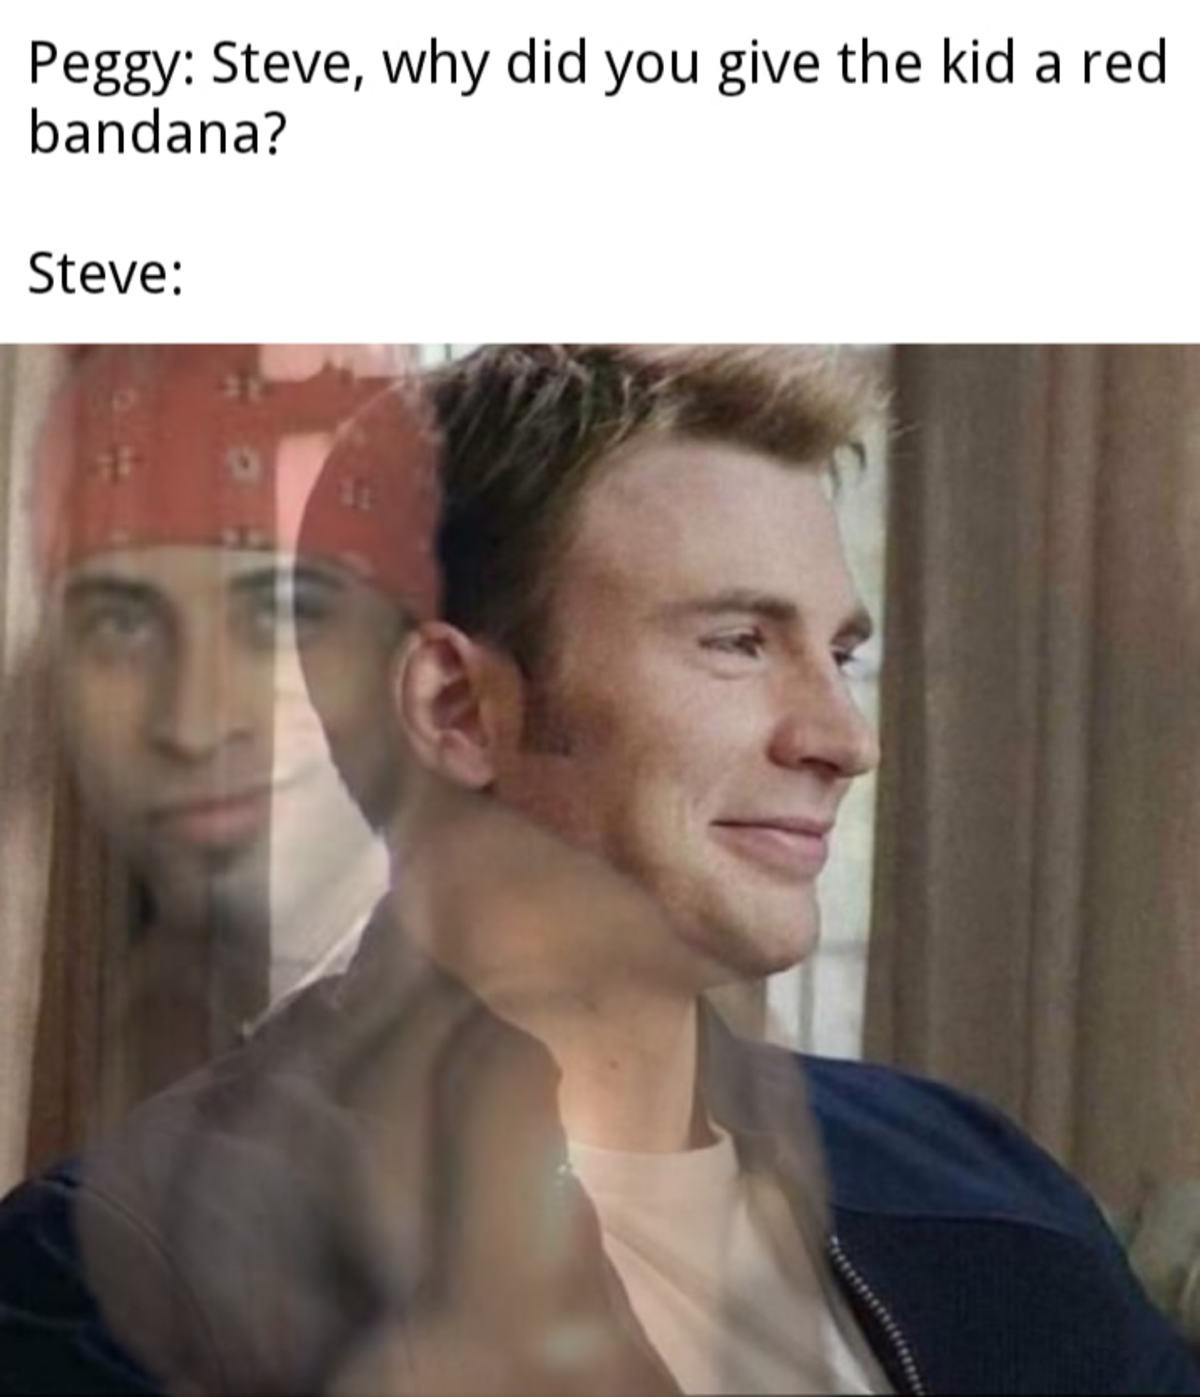 Steve planting the seed for a new hero. .. finally a positive one